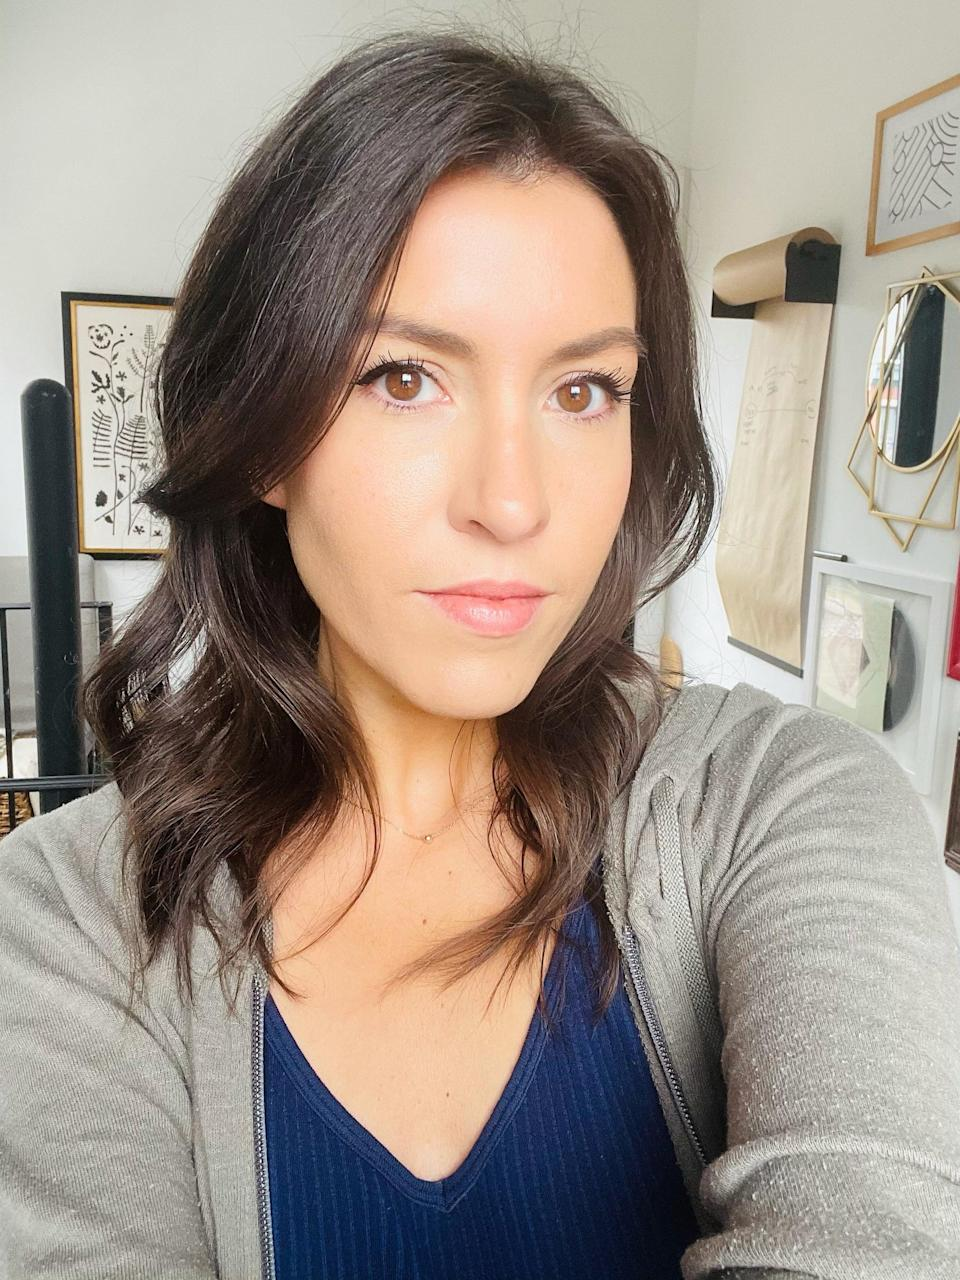 """<p>When I woke up, my hair looked smoother, but my roots were still a smidge uneven in volume. I figured the best way to level out the playing field was to add a few waves with my favorite <a href=""""https://www.t3micro.com/product/curl-id-curling-iron"""" class=""""link rapid-noclick-resp"""" rel=""""nofollow noopener"""" target=""""_blank"""" data-ylk=""""slk:T3 Curl ID Smart Curling Iron"""">T3 Curl ID Smart Curling Iron</a> ($235). </p> <p>Strangely I still felt that, despite the majority of my hair no longer living on the right side of my face, I still slanted my head for a selfie toward the right. I guess relearning my angles for middle part-dom is something TikTok will have to teach me, too. </p>"""